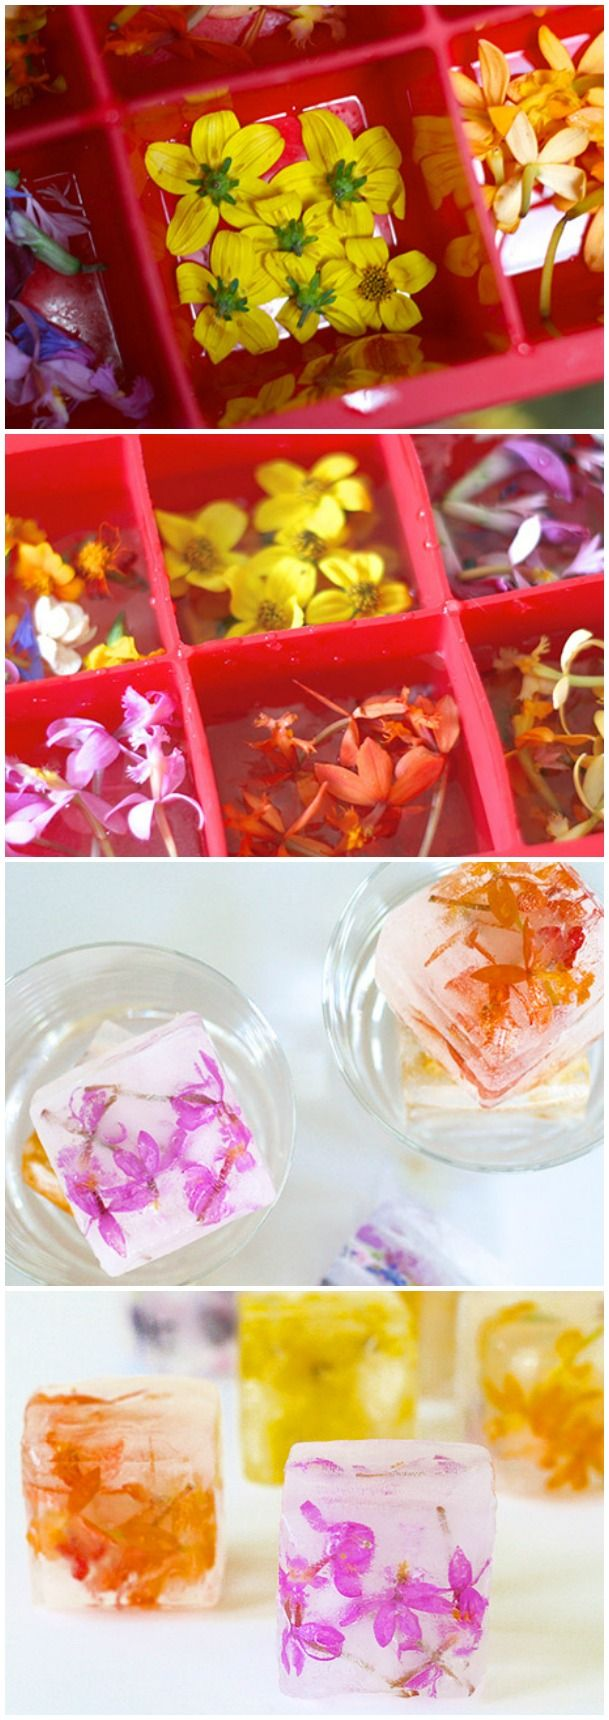 #HowTo Make Edible Flower Ice Cubes & where to buy edible flowers